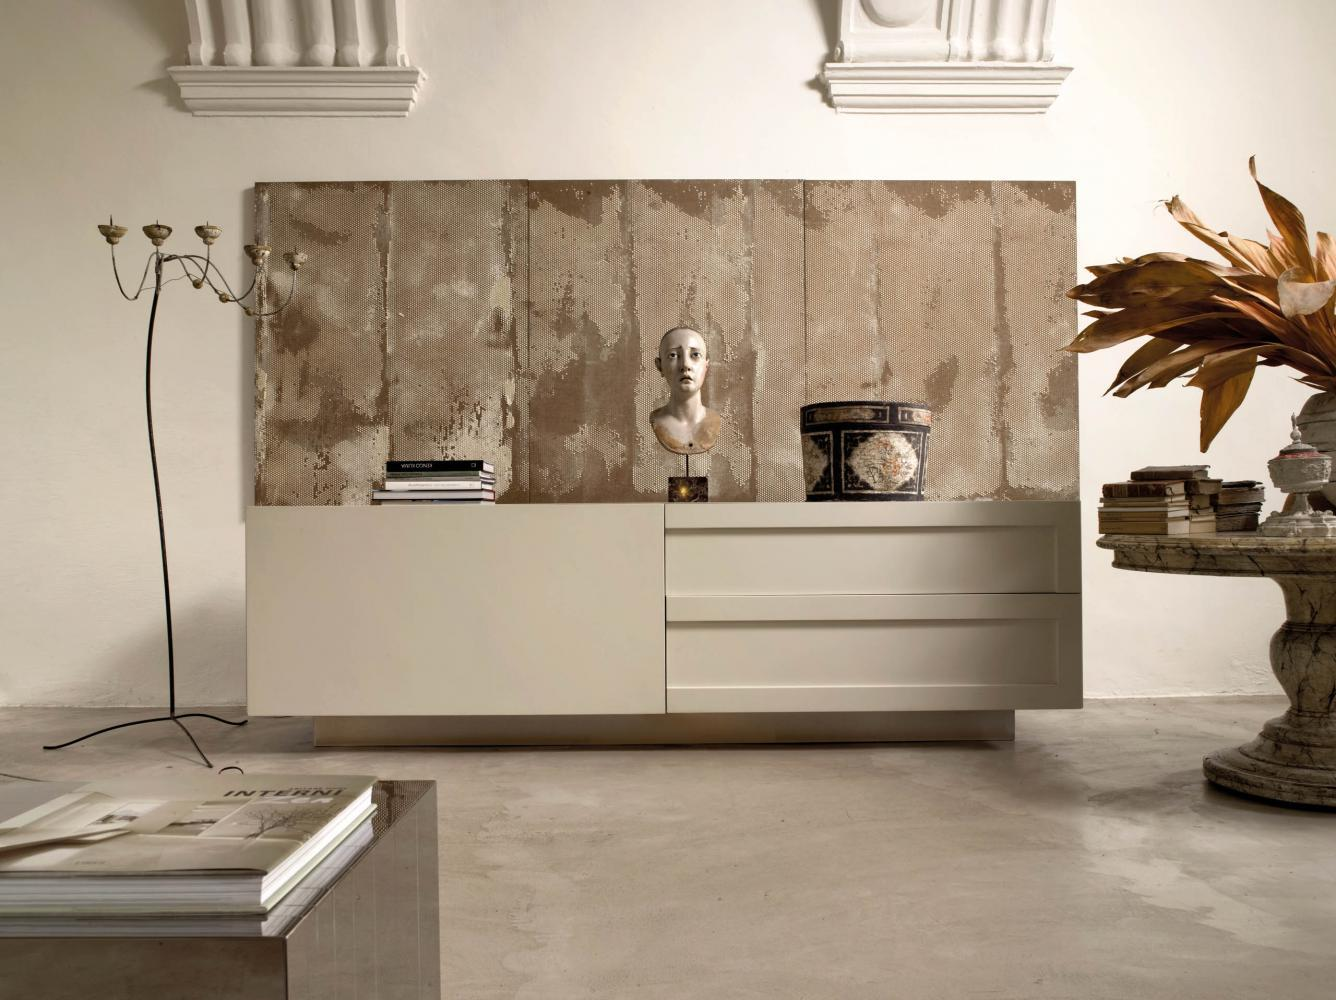 Laurameroni luxury modern artisanal wooden sideboards and drawers for contemporary interior decor and design